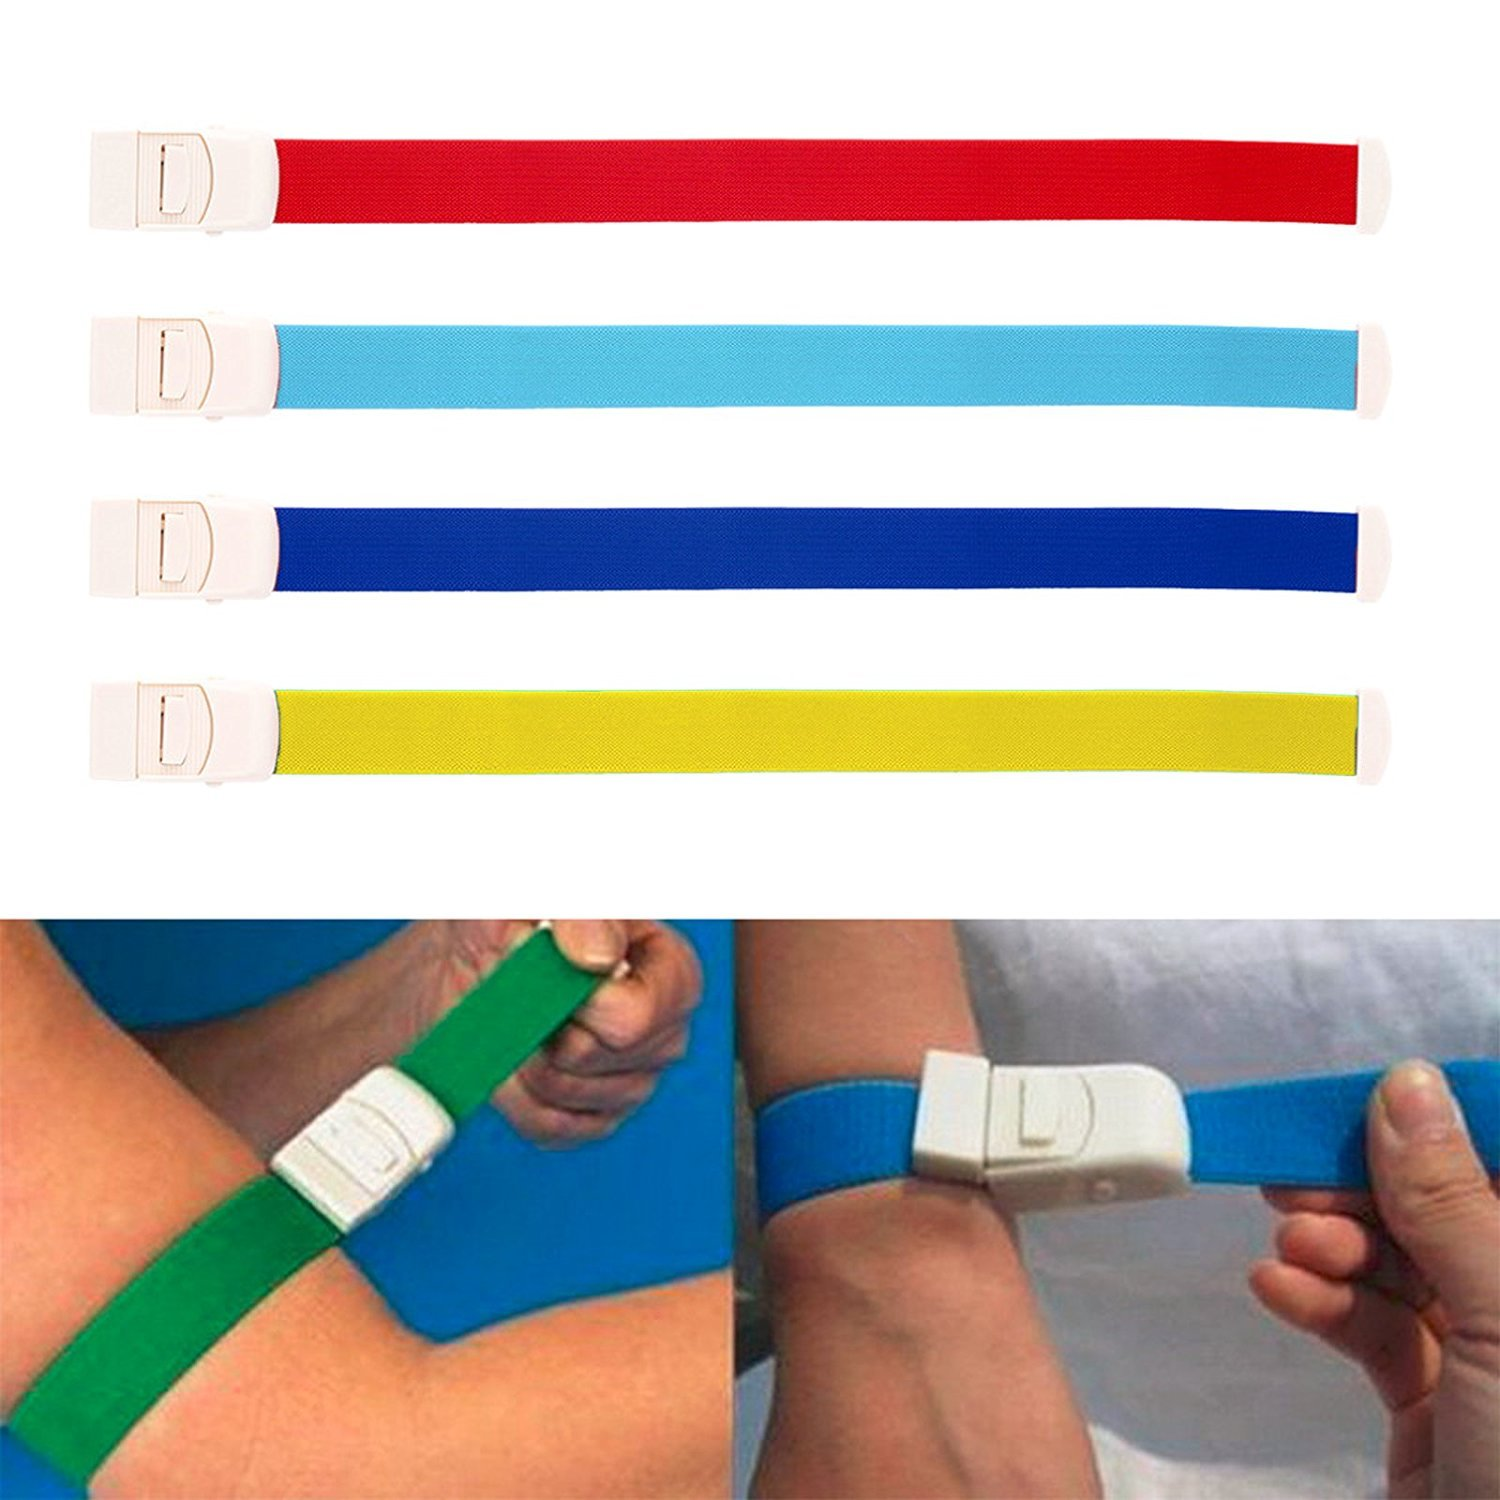 GUOYIHUA 1pc(Random Color)Tourniquet Strap, for First Aid Response/Hiking and Emergency Kits/Emergencies and occluding Blood Flow